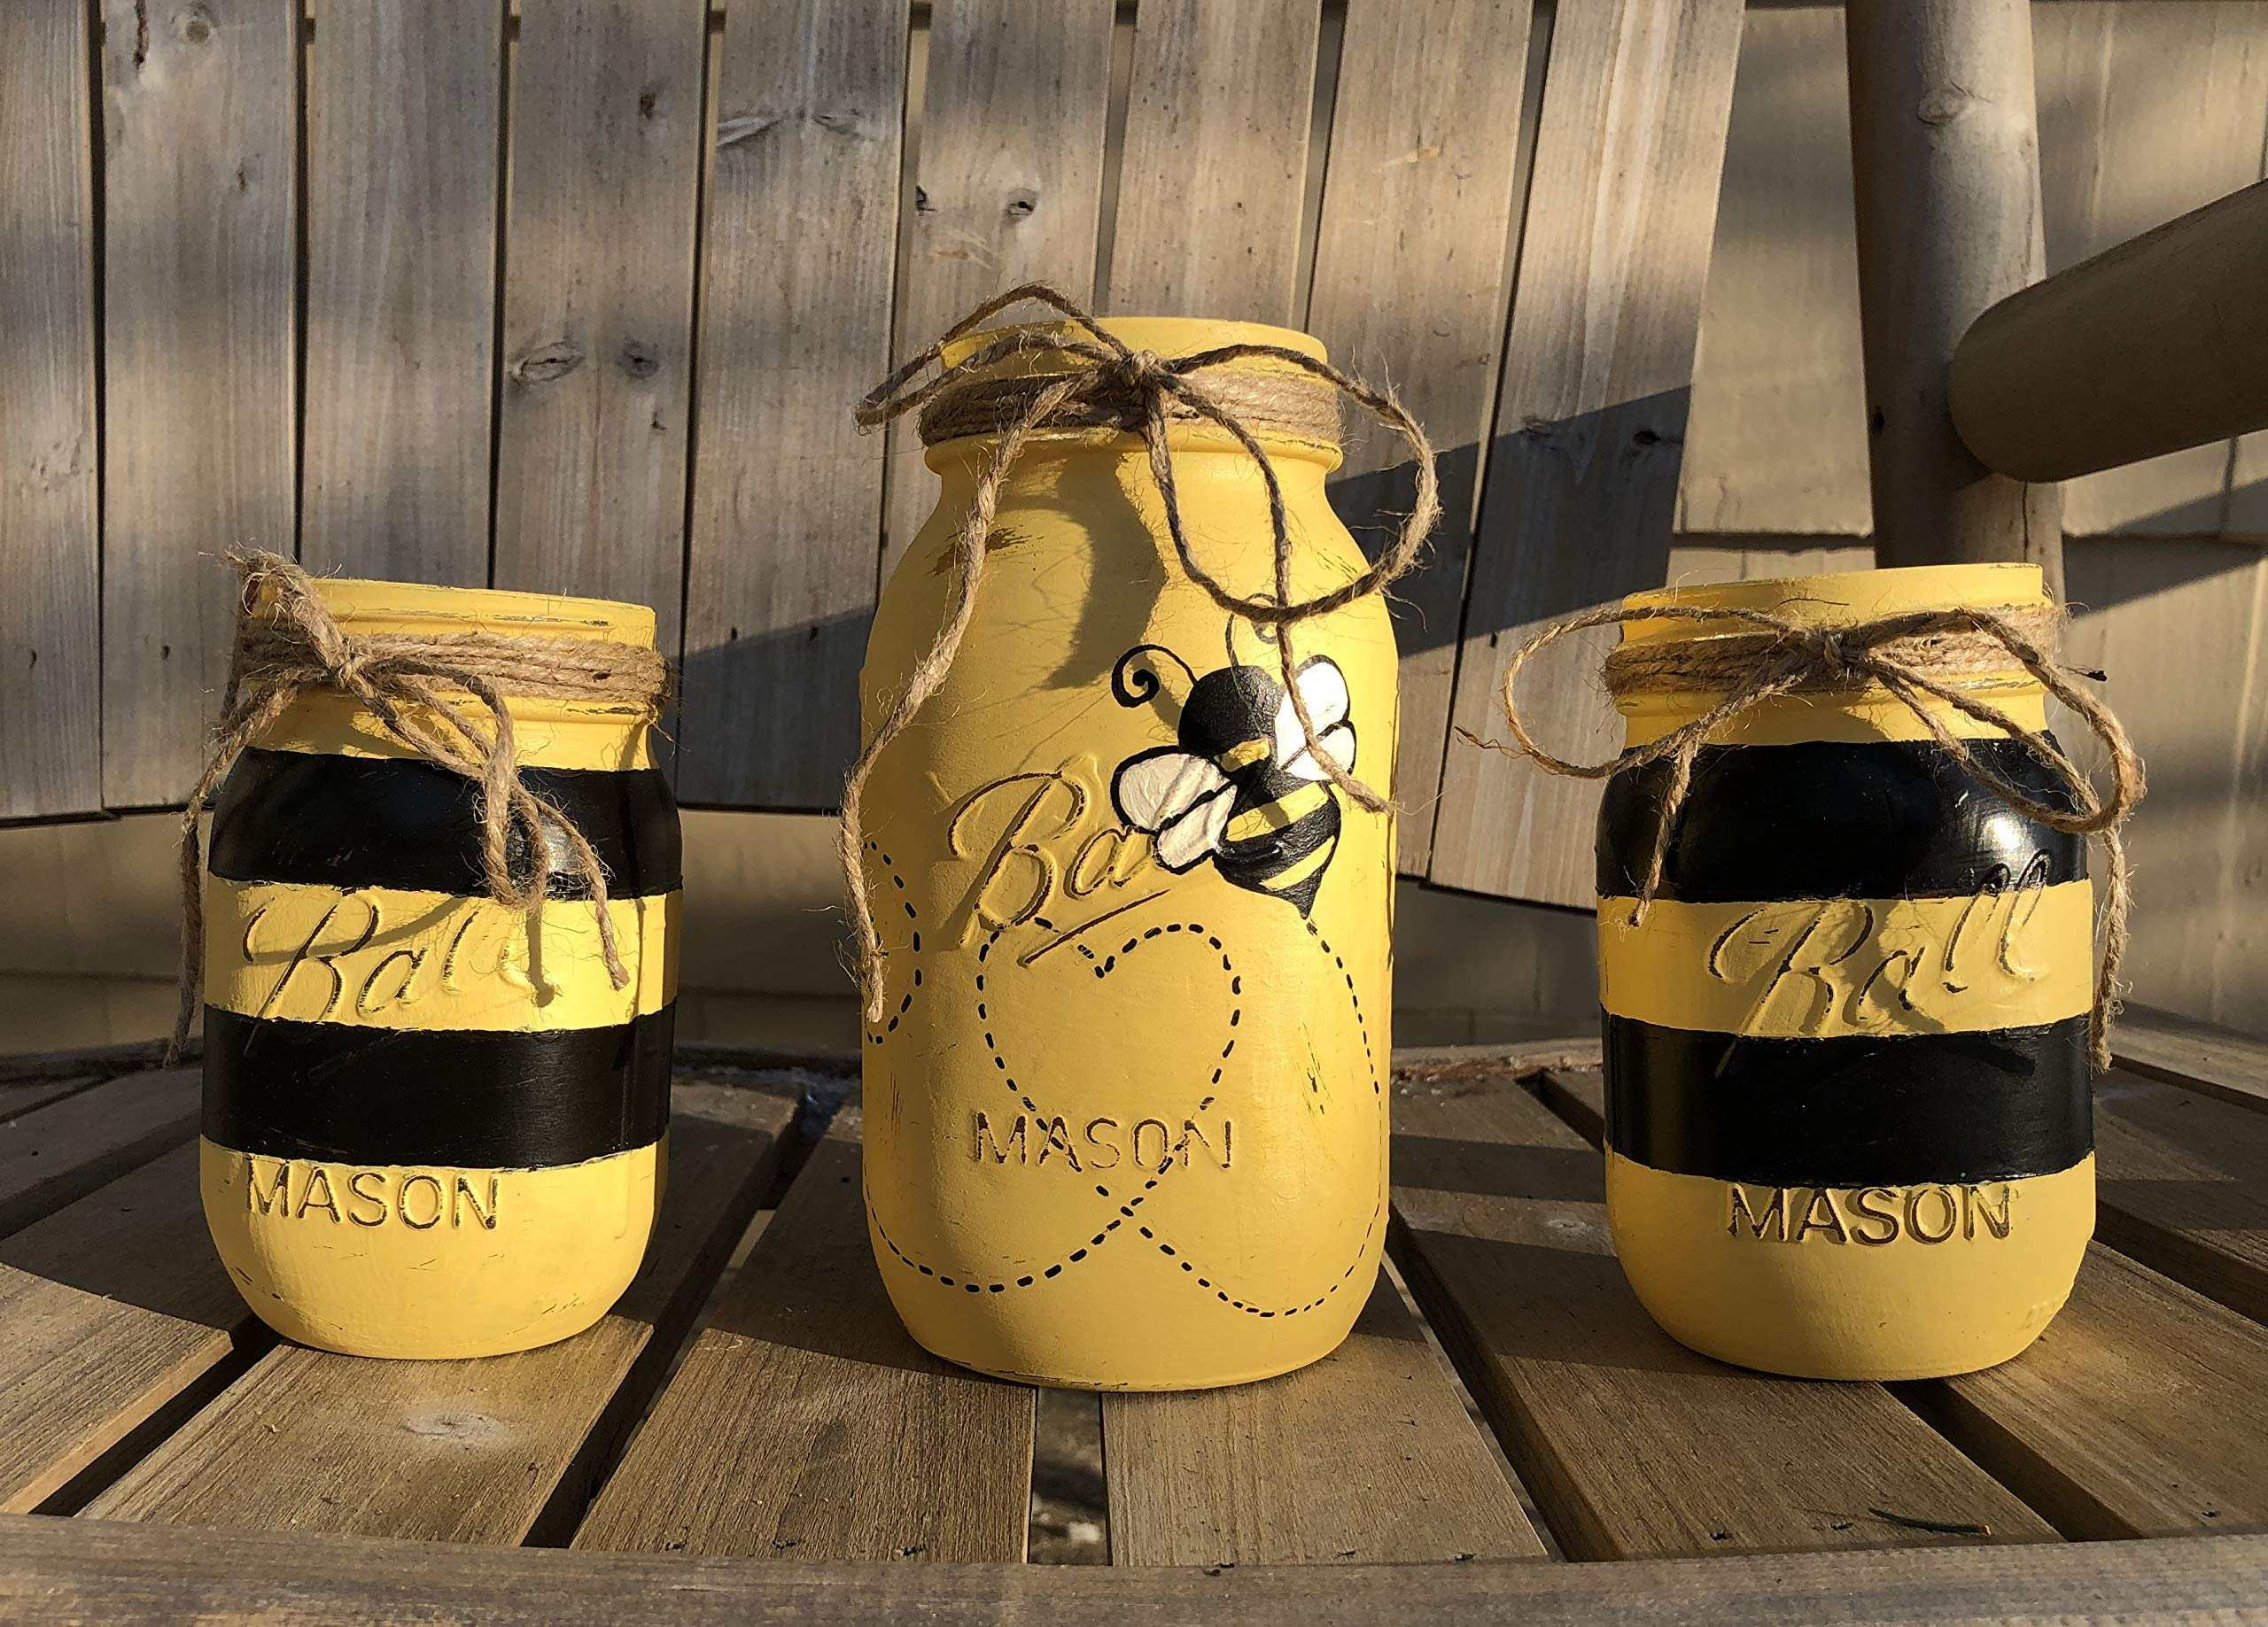 Bumble Bee Mason Jar Set/Bee Decor/Black & Yellow Bee Centerpiece/Bumble Bee Decor/Bee Baby Shower Gift/Bumble Bee Party by Redwood Home